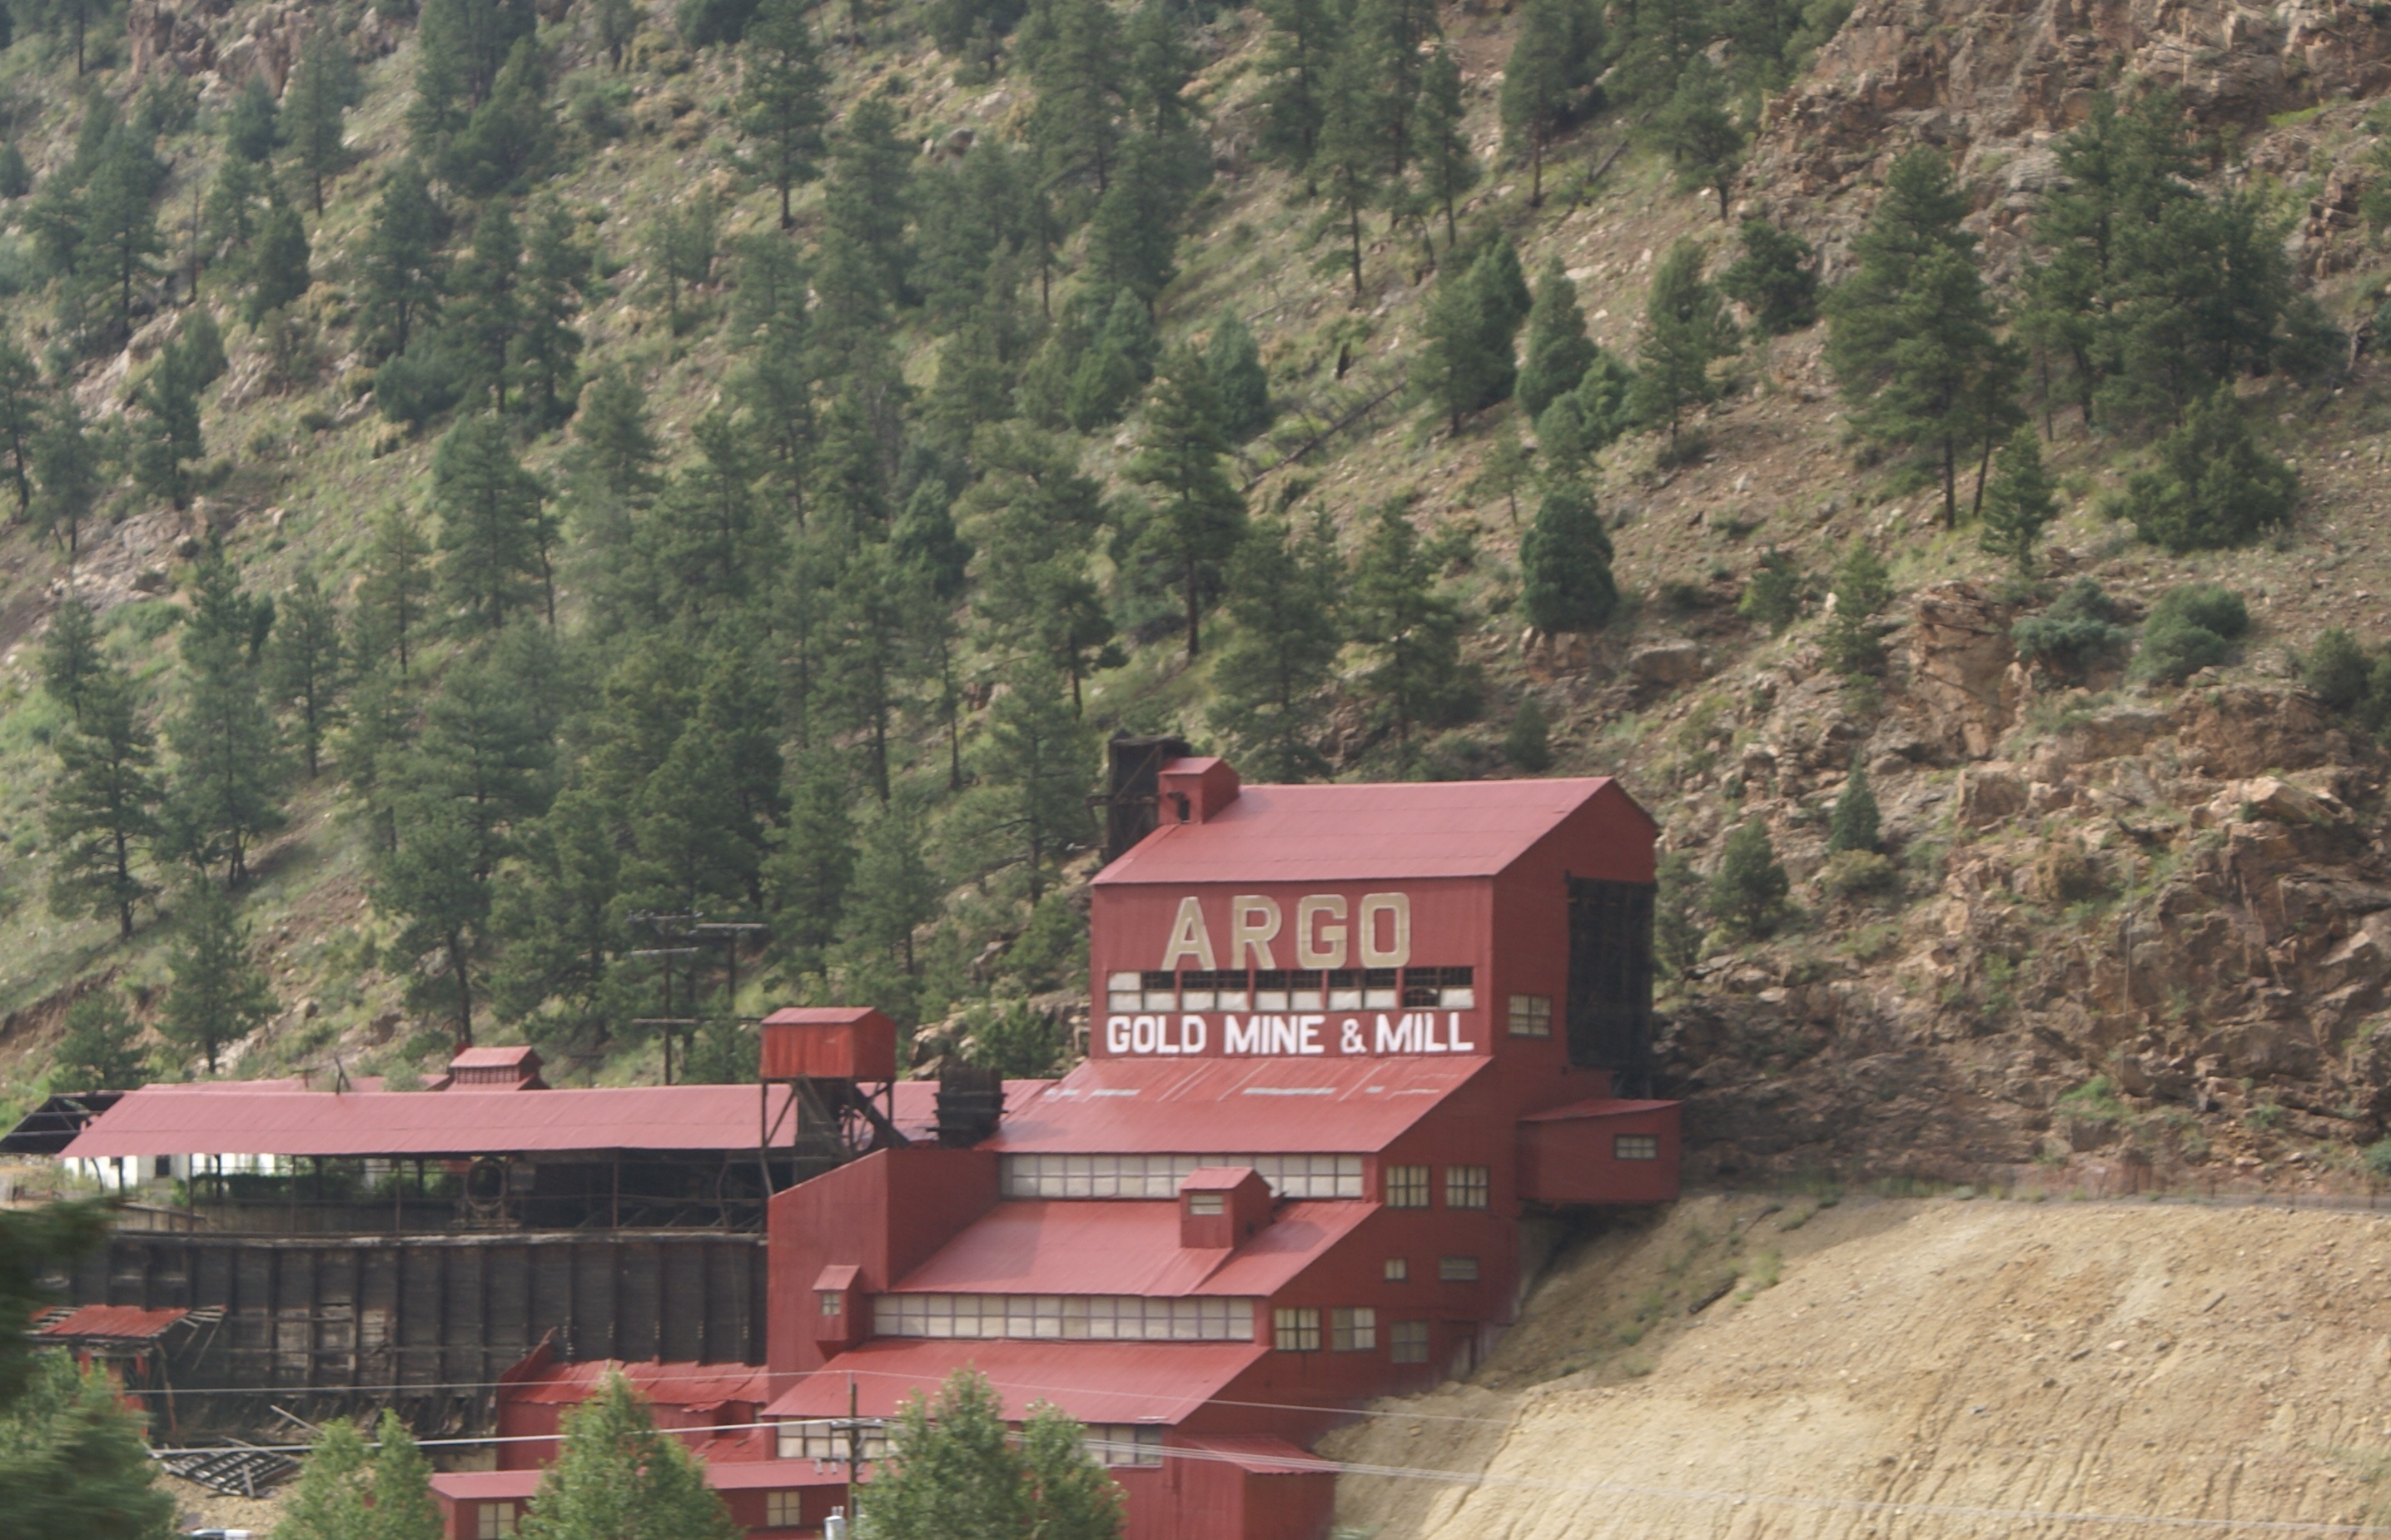 File:ARGO Gold Mine Colorado jpg - Wikimedia Commons